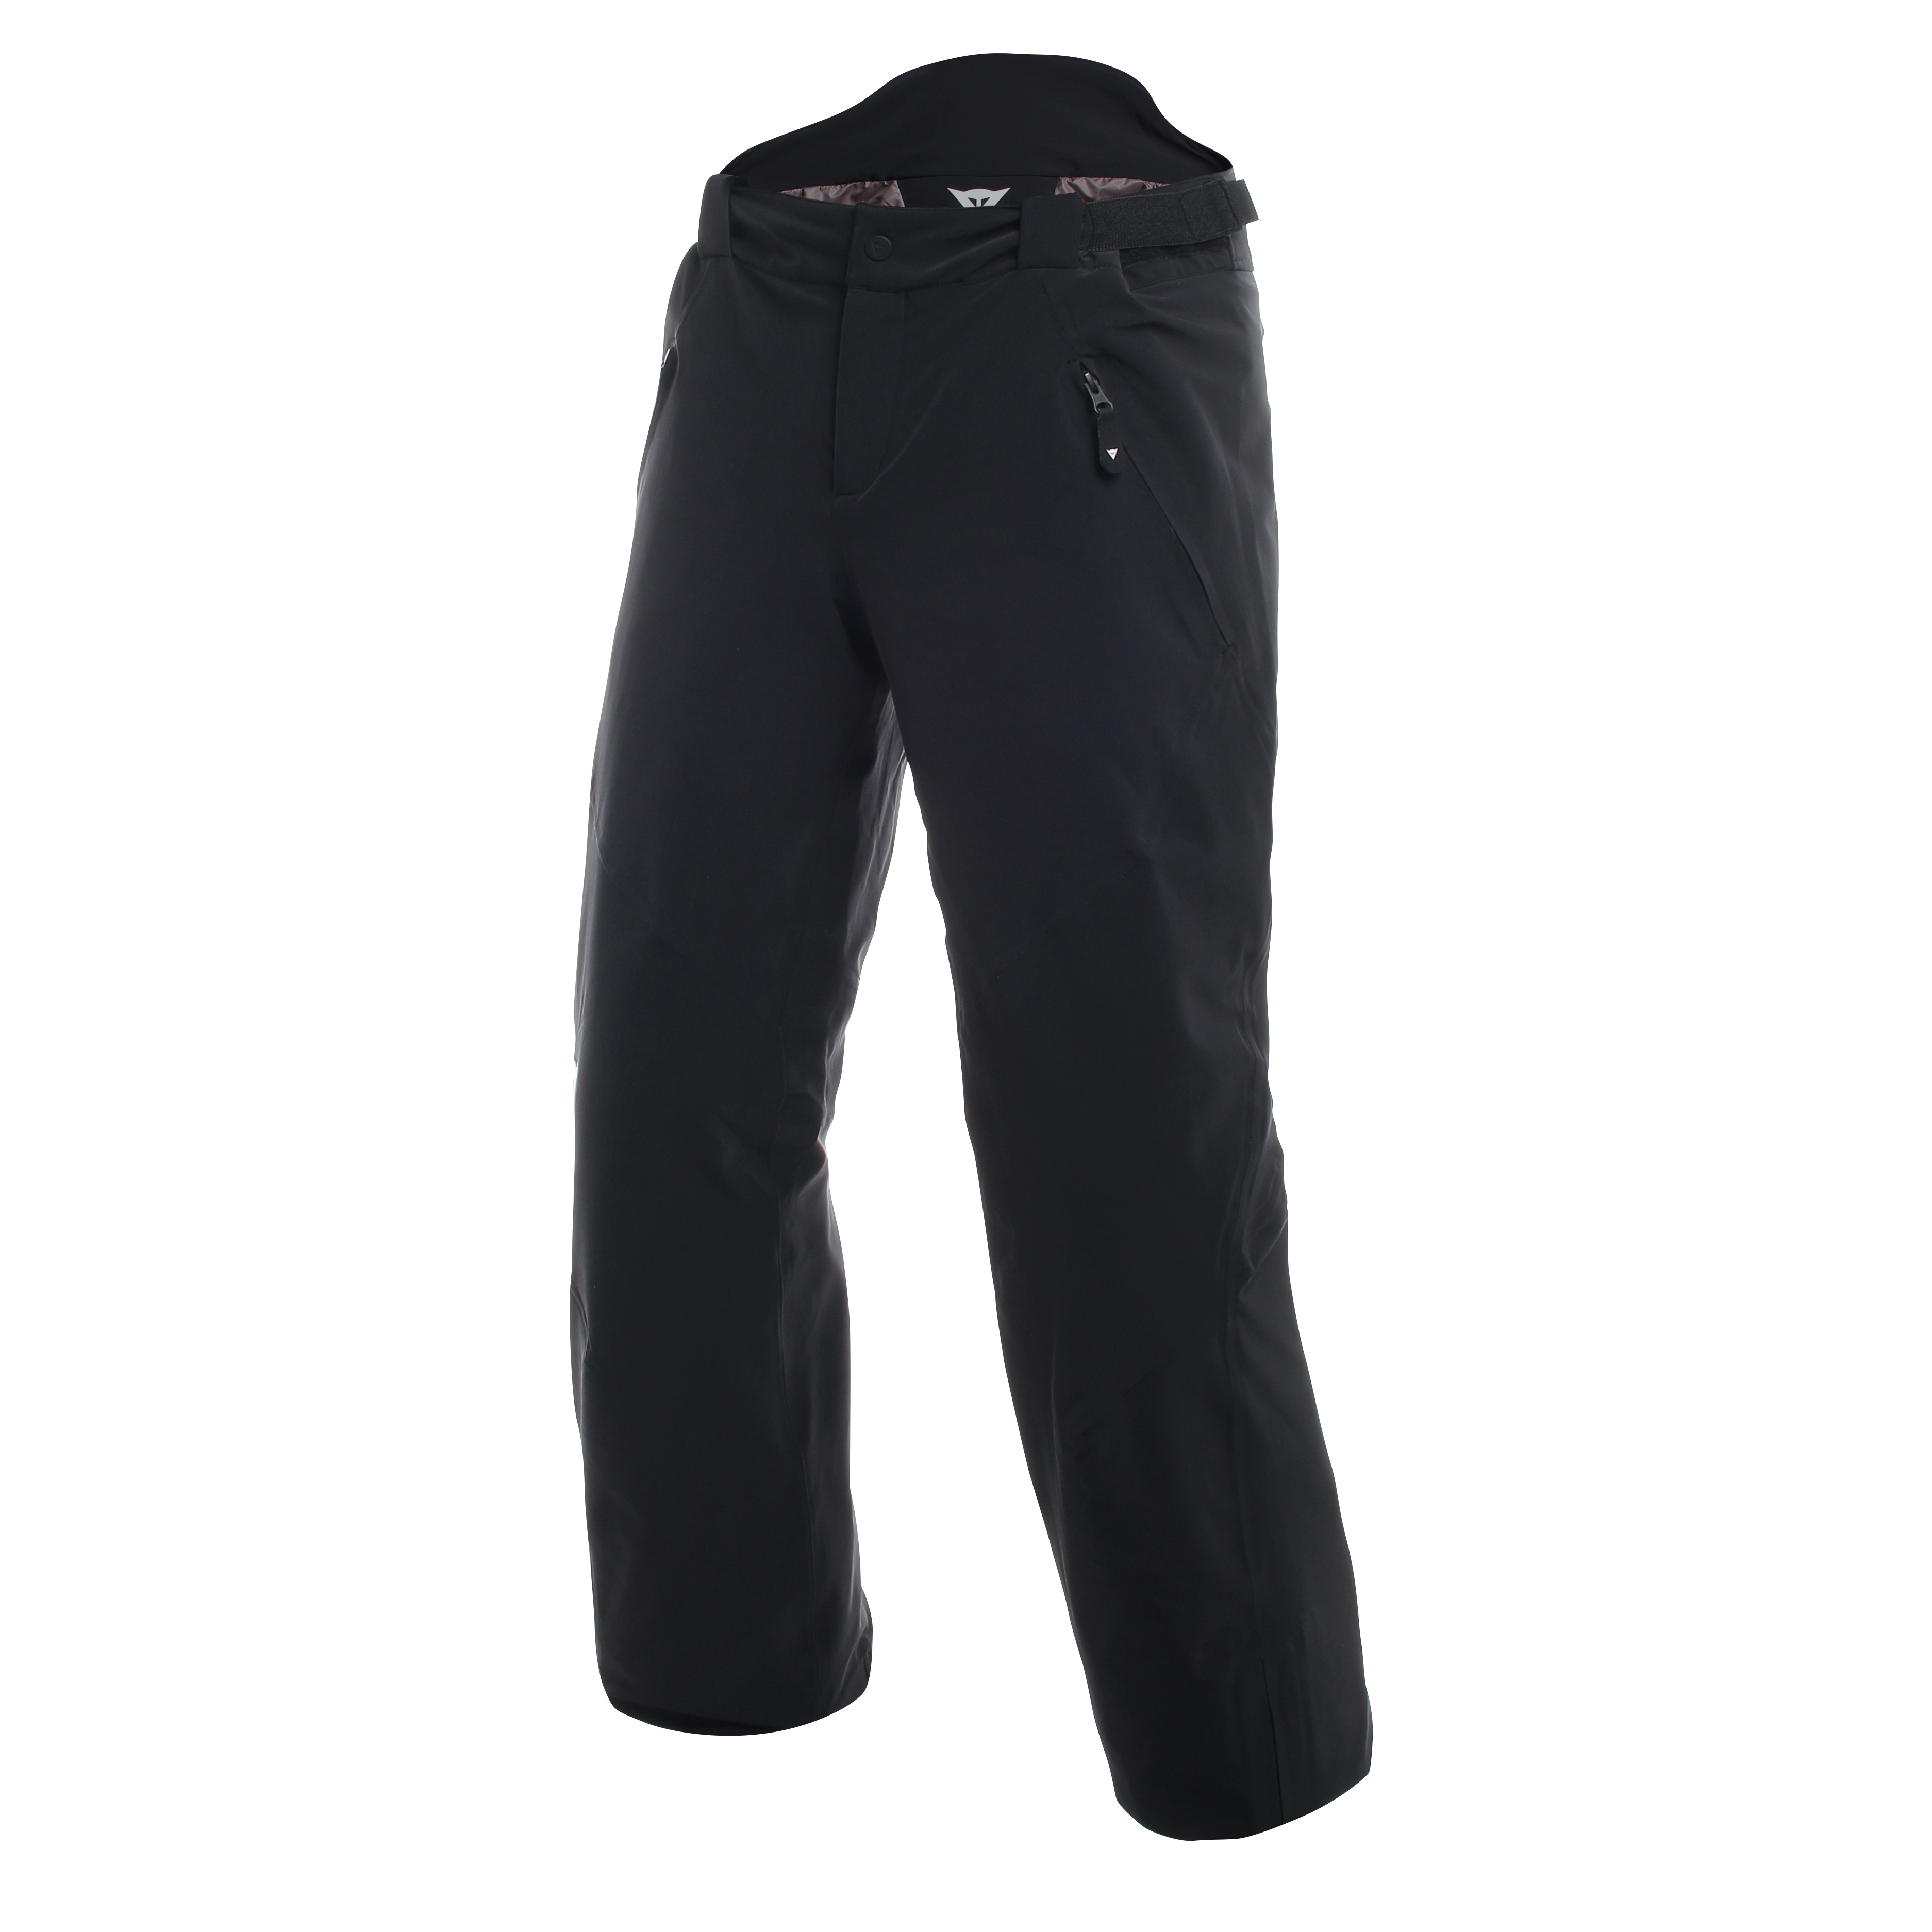 DAINESE PANT .HP2 P M1 Y41 STRETCH LIMO - 2018